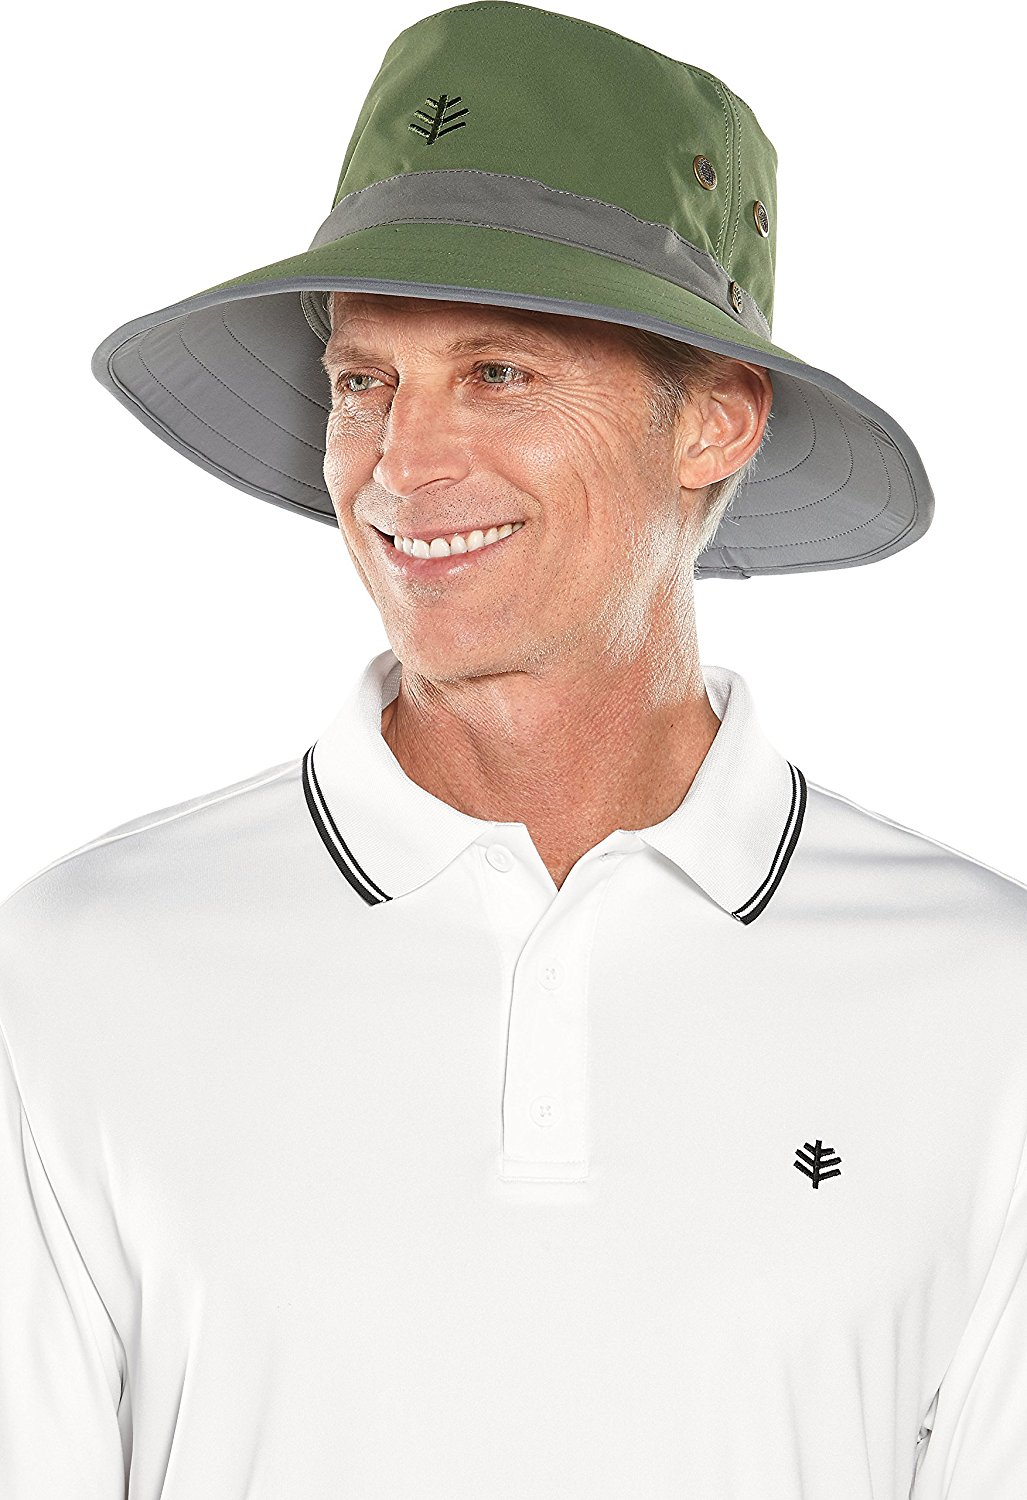 442bd4f1 Buy Coolibar UPF 50+ Mens Matchplay Golf Hat - Sun Protective in ...